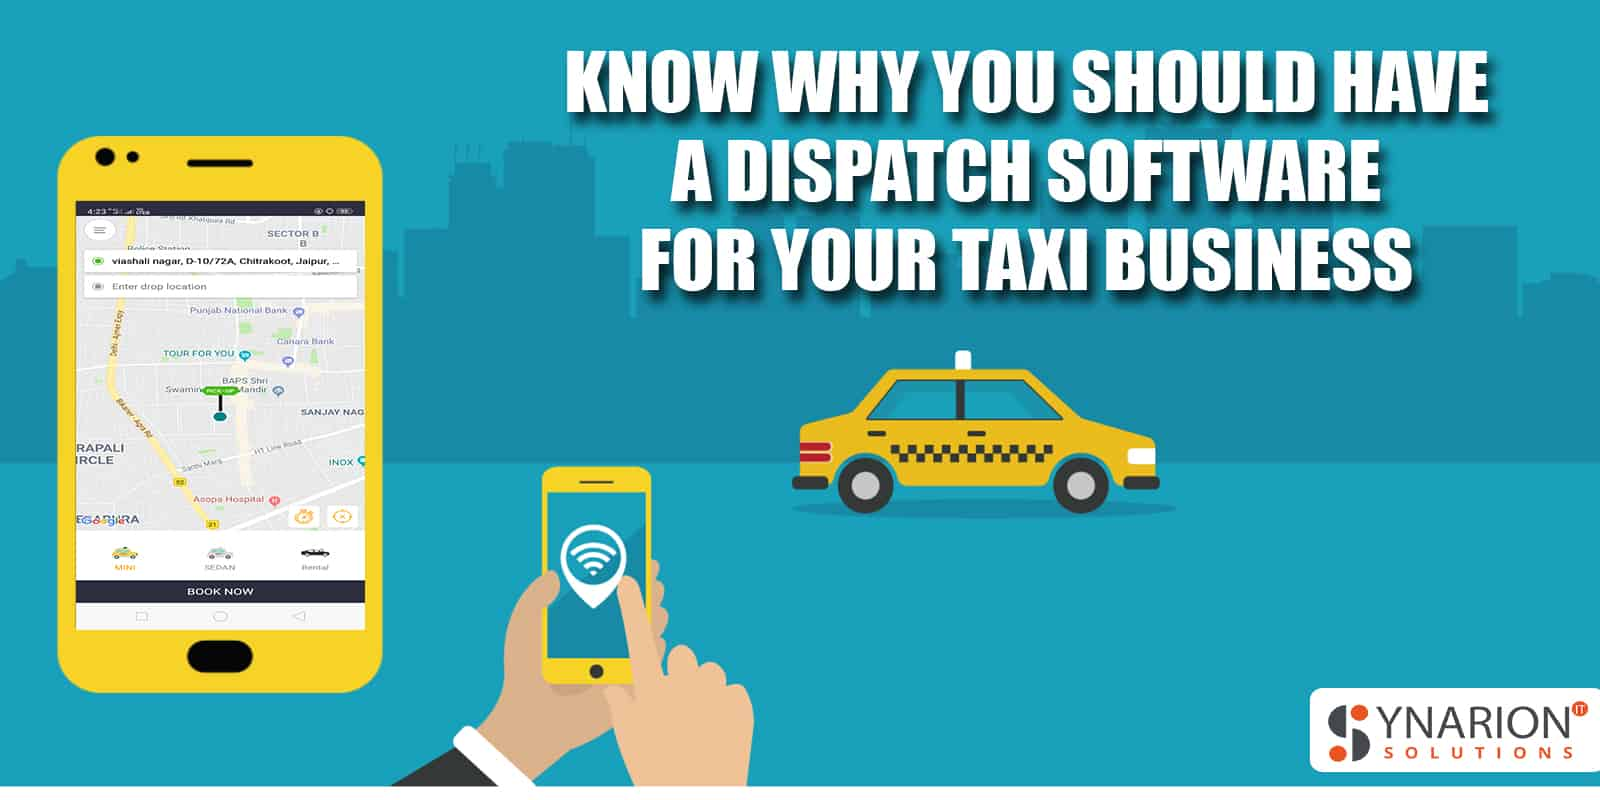 Know why you should have a dispatch software for your taxi business